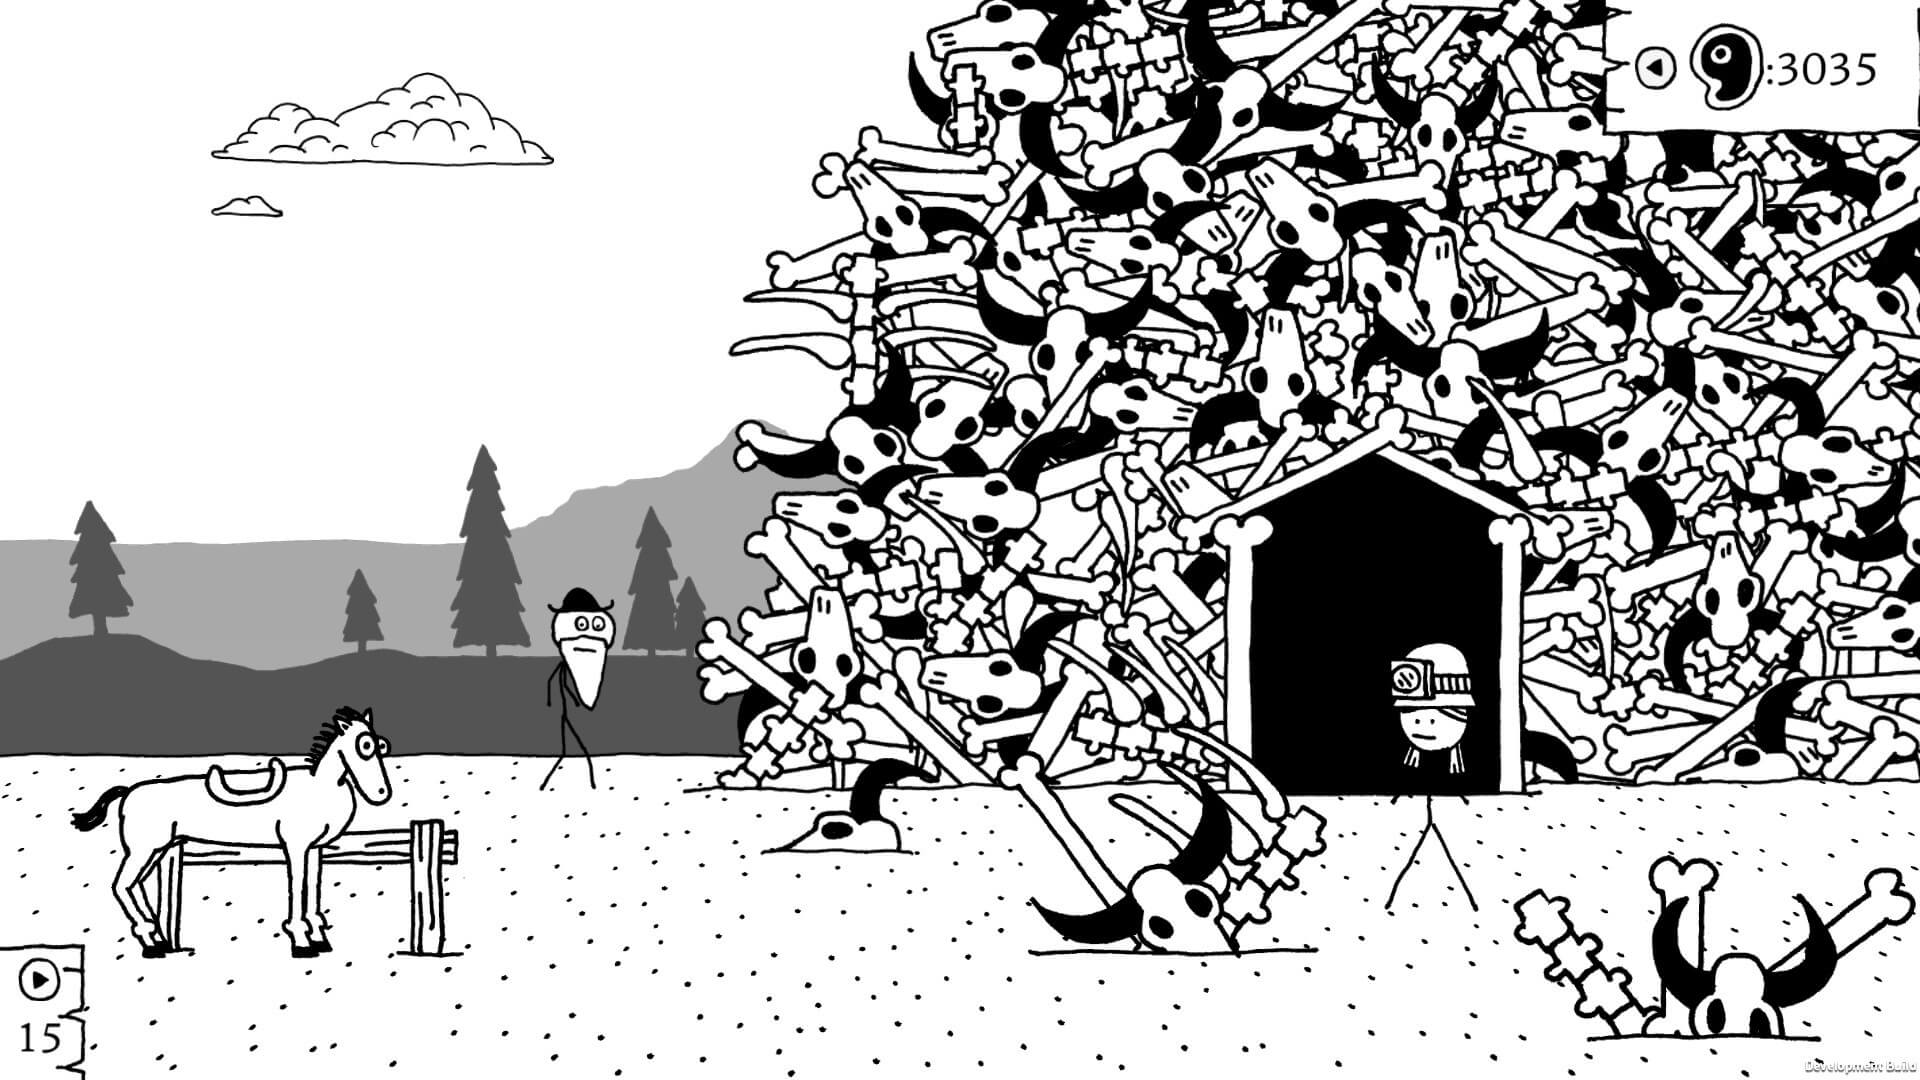 west of loathing,west of loathing gameplay,west of loathing (pc),west of loathing game,west of loathing playthrough,west of loathing pc,loathing,west of loathing walkthrough,kingdom of loathing,pc game,west of loathing pc gameplay,west of loathing pc playthrough,pc gameplay,west of loathing steam,west of loathing review,let's play west of loathing,west of loathing 1,gameplay west of loathing,let's play west of loathing 1,let's play west of loathing part 1,retromation west of loathing